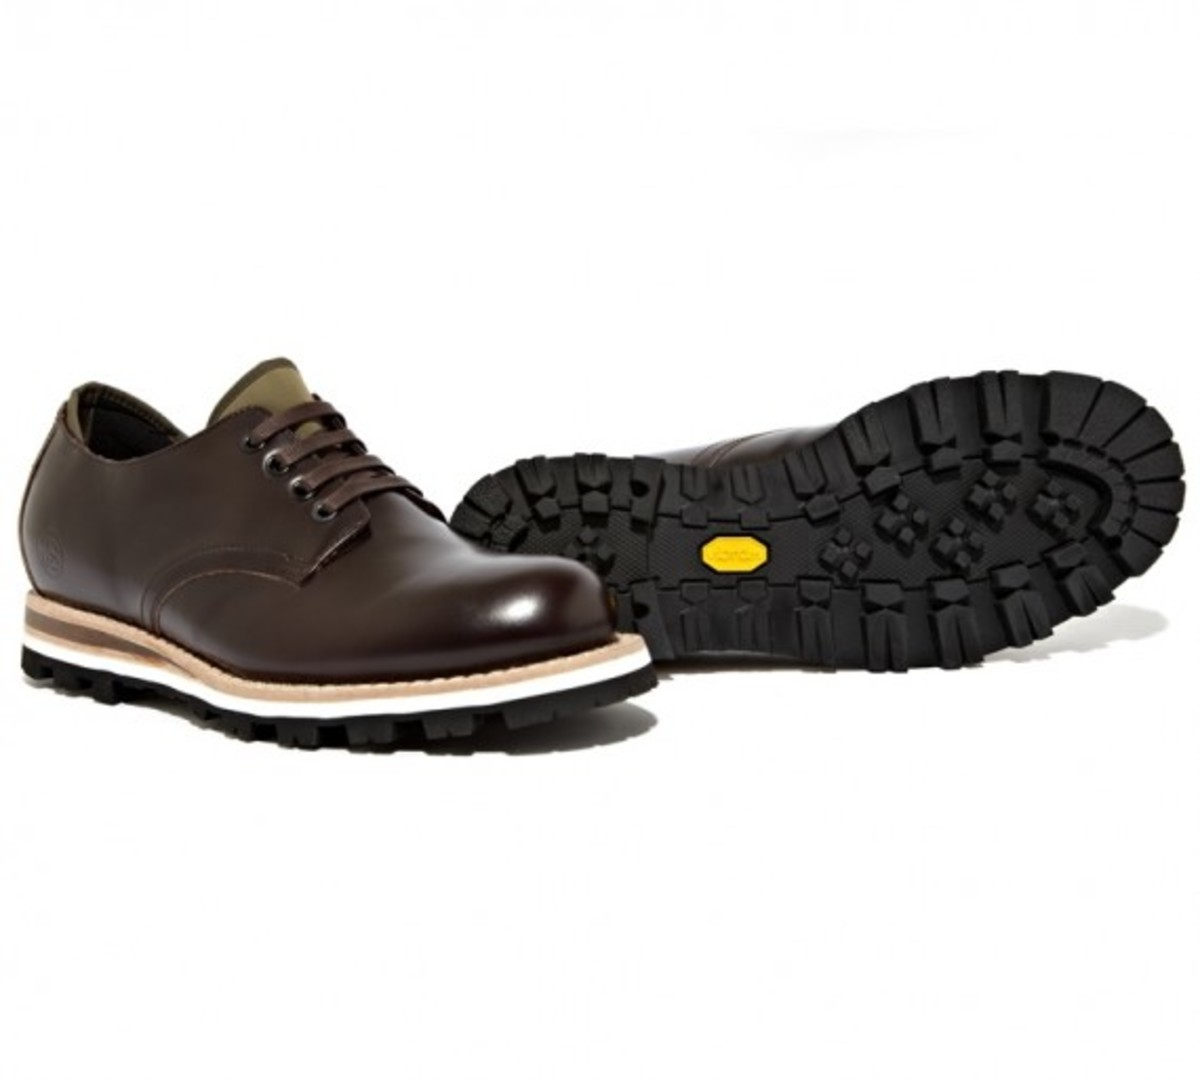 stussy-deluxe-be-positive-leather-shoes-06